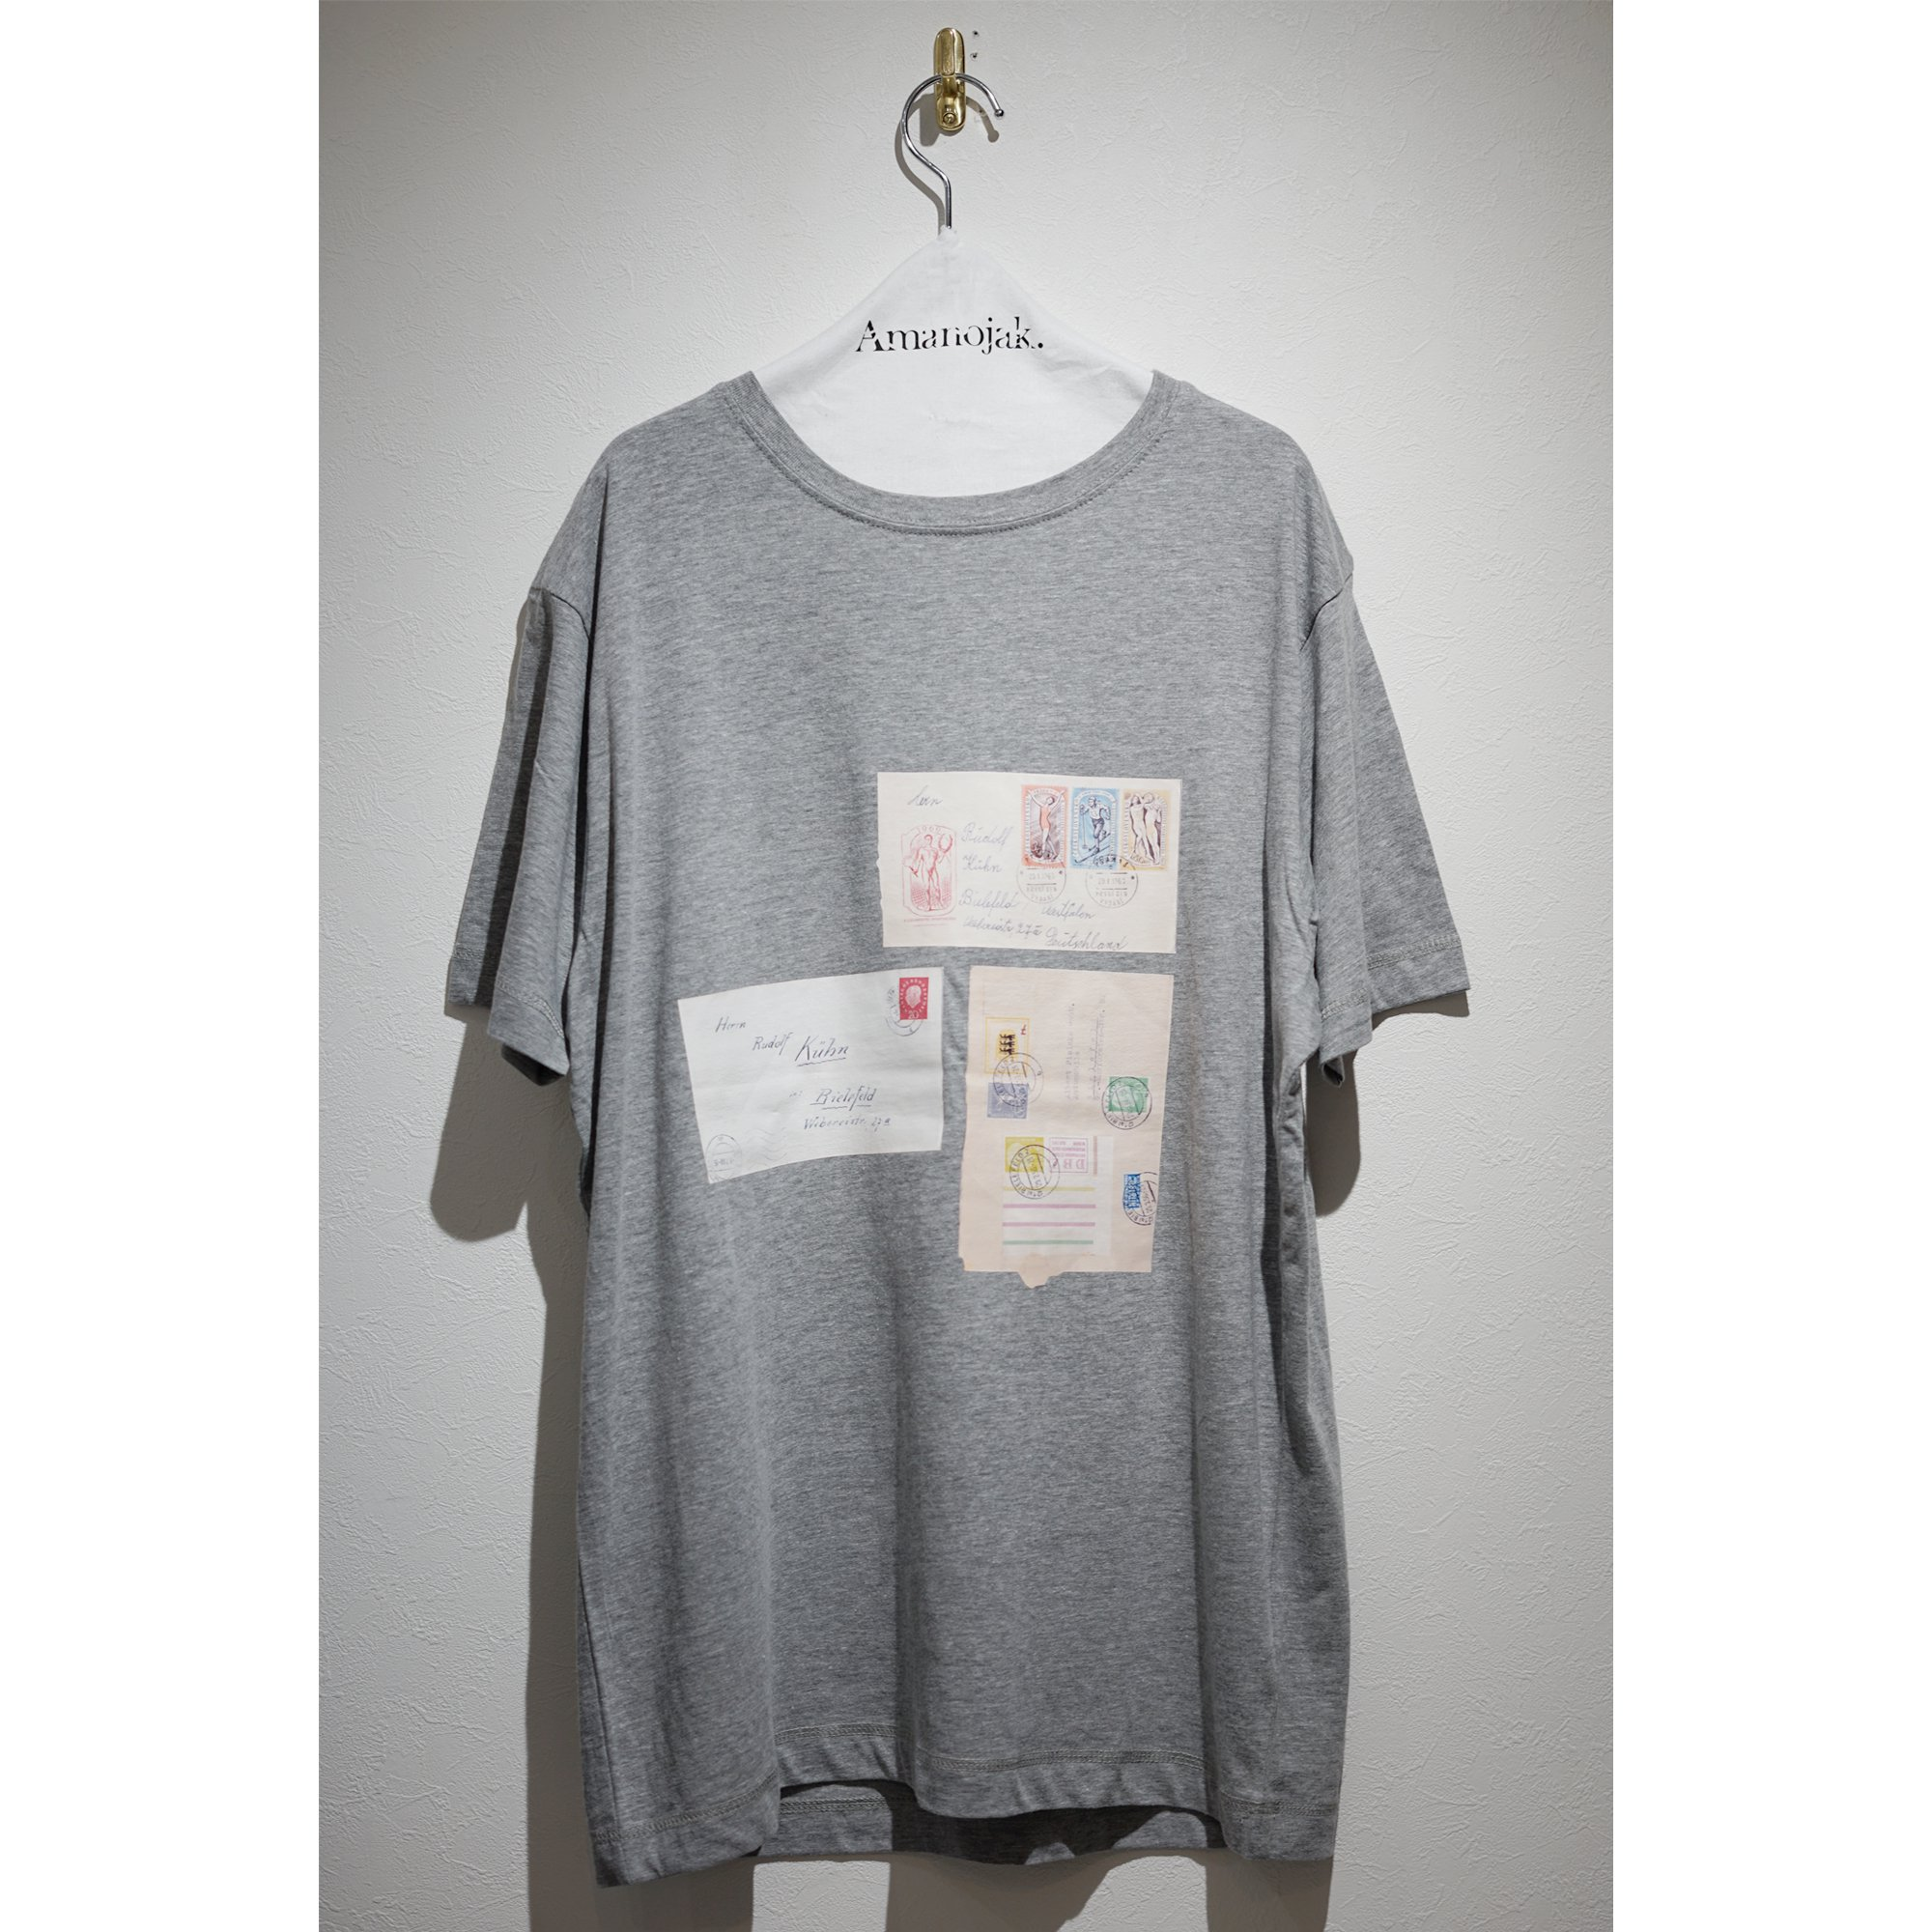 FIRST DAY OF ISSUE by FRANK LEDER-COTTON TEE TRIPLE POST CARDS GRAY